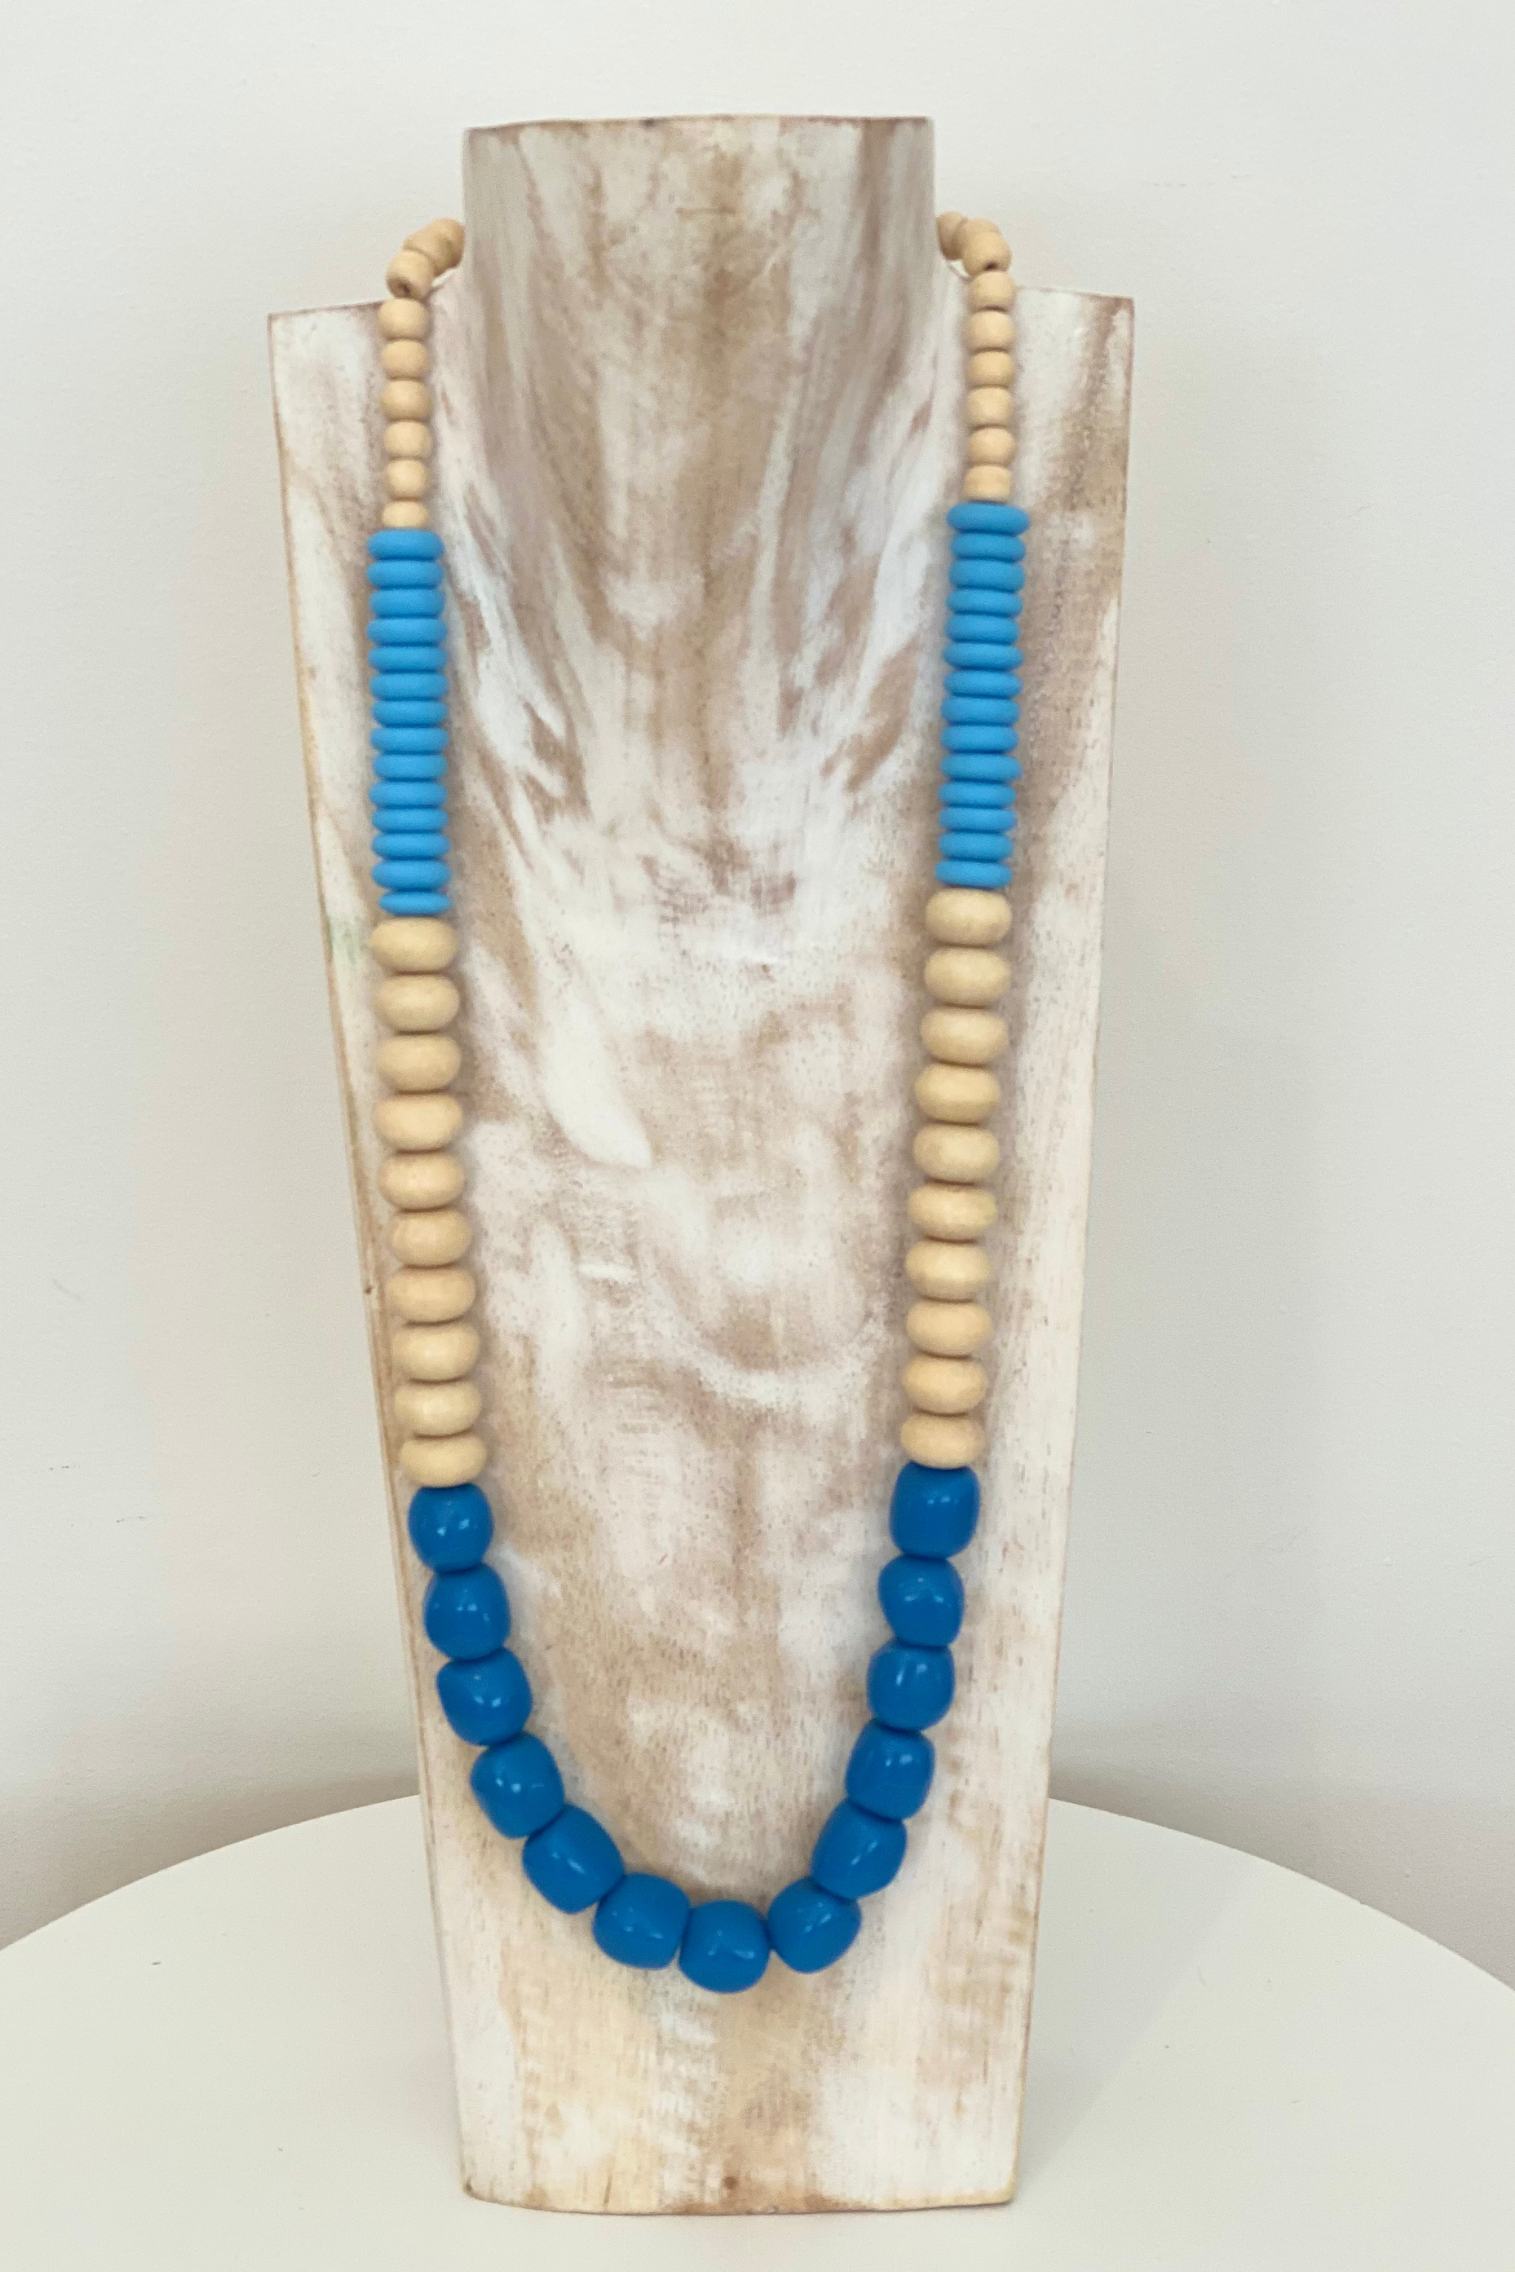 Necklace NBB318 - Cobalt